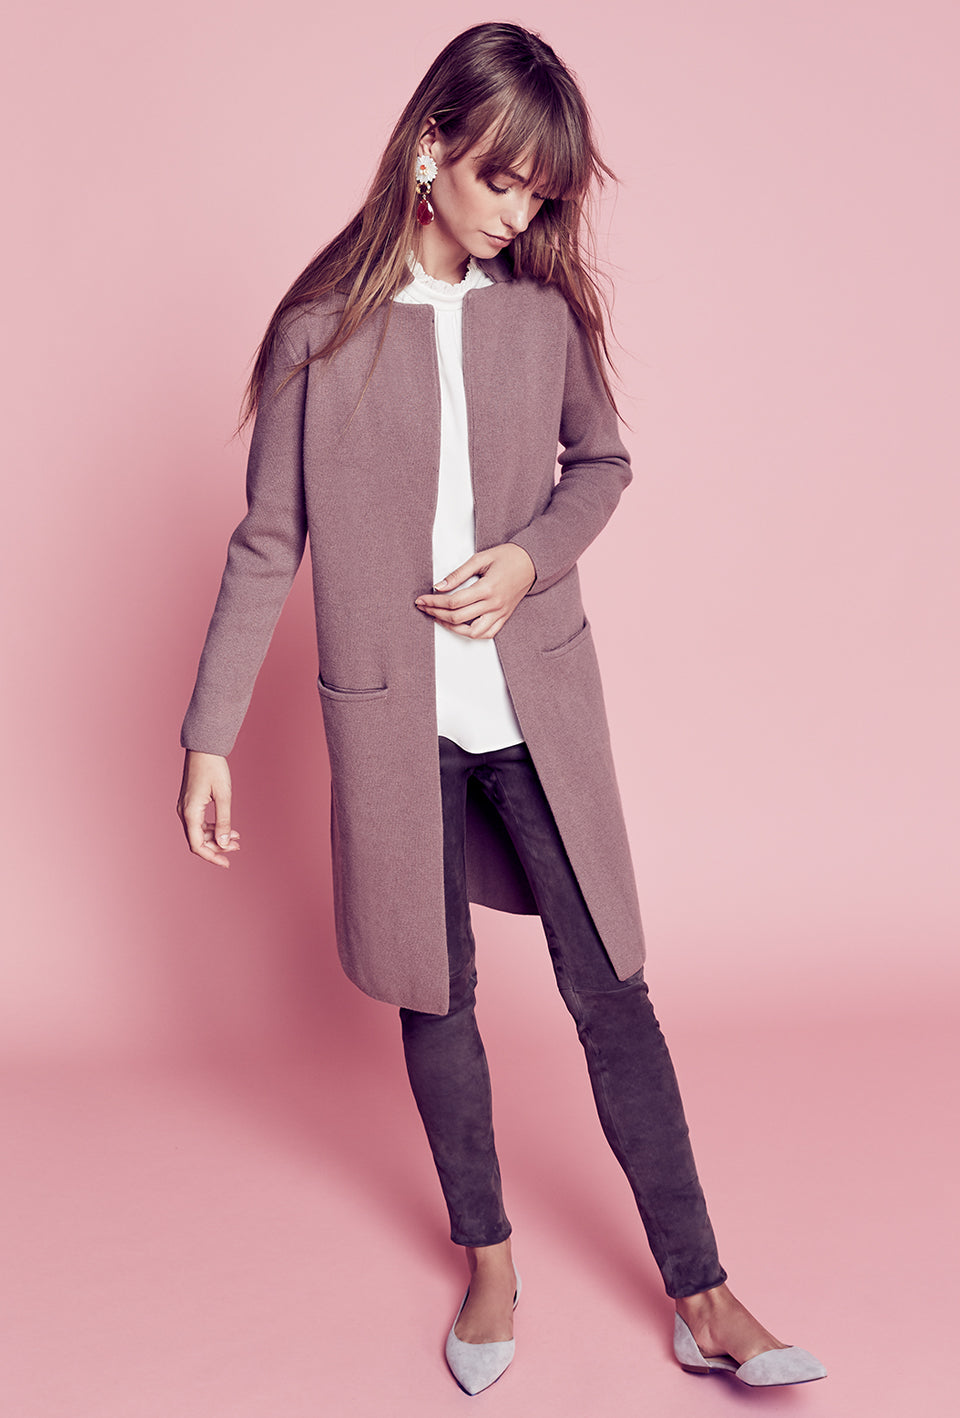 Notch Collar Cashmere Coat - Dusty Rose